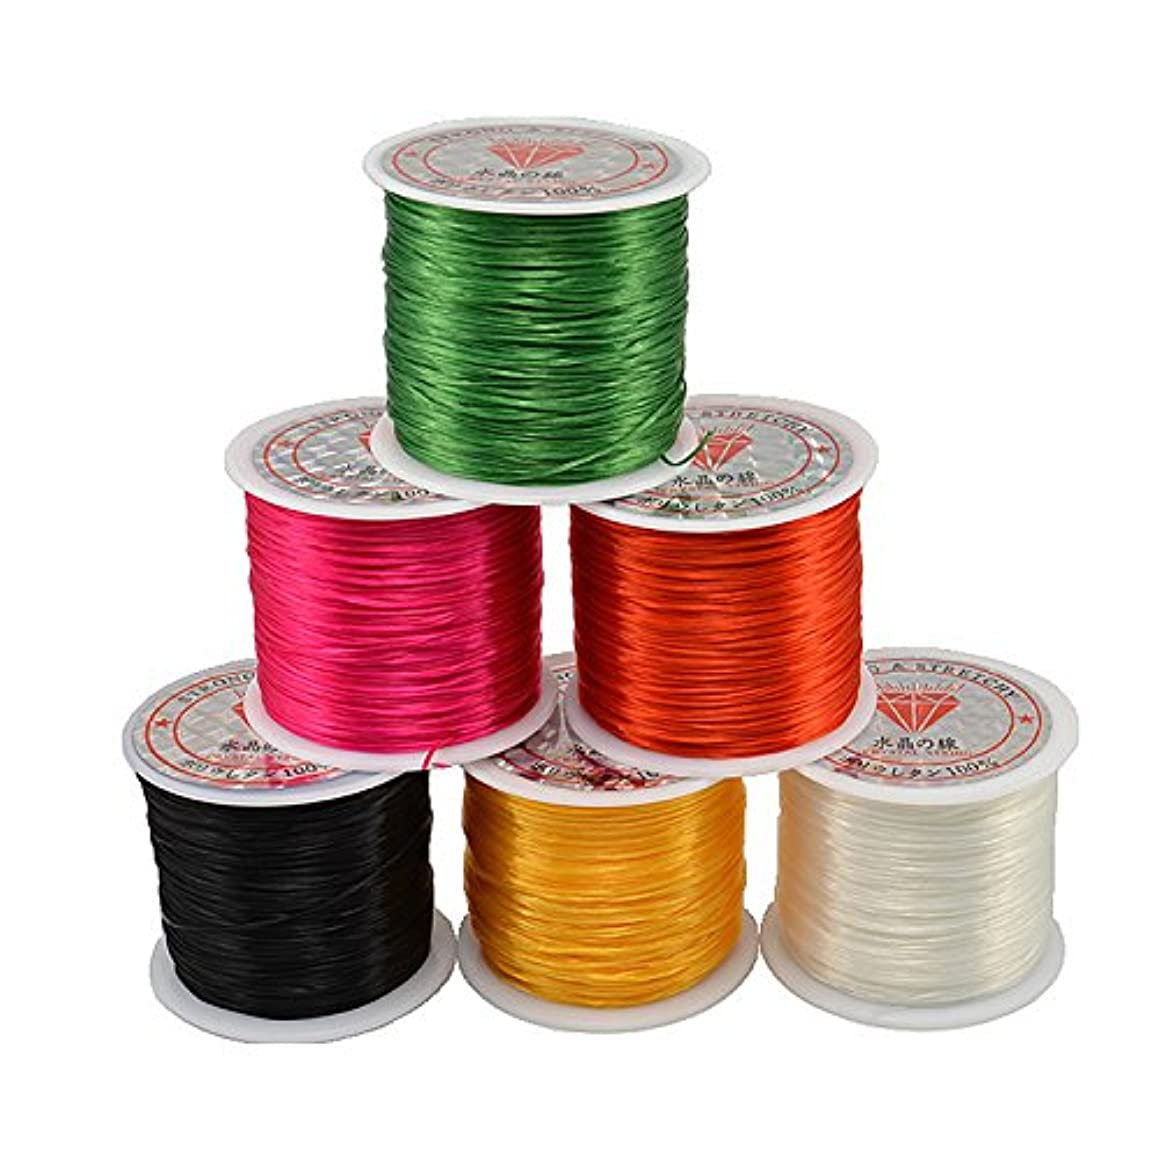 165ft/Roll 0.5mm Colorful Stretchy Elastic Rope Cord 6 Colors Crystal String for Jewelry Making Beading Bracelet Wire Fishing Thread Rope